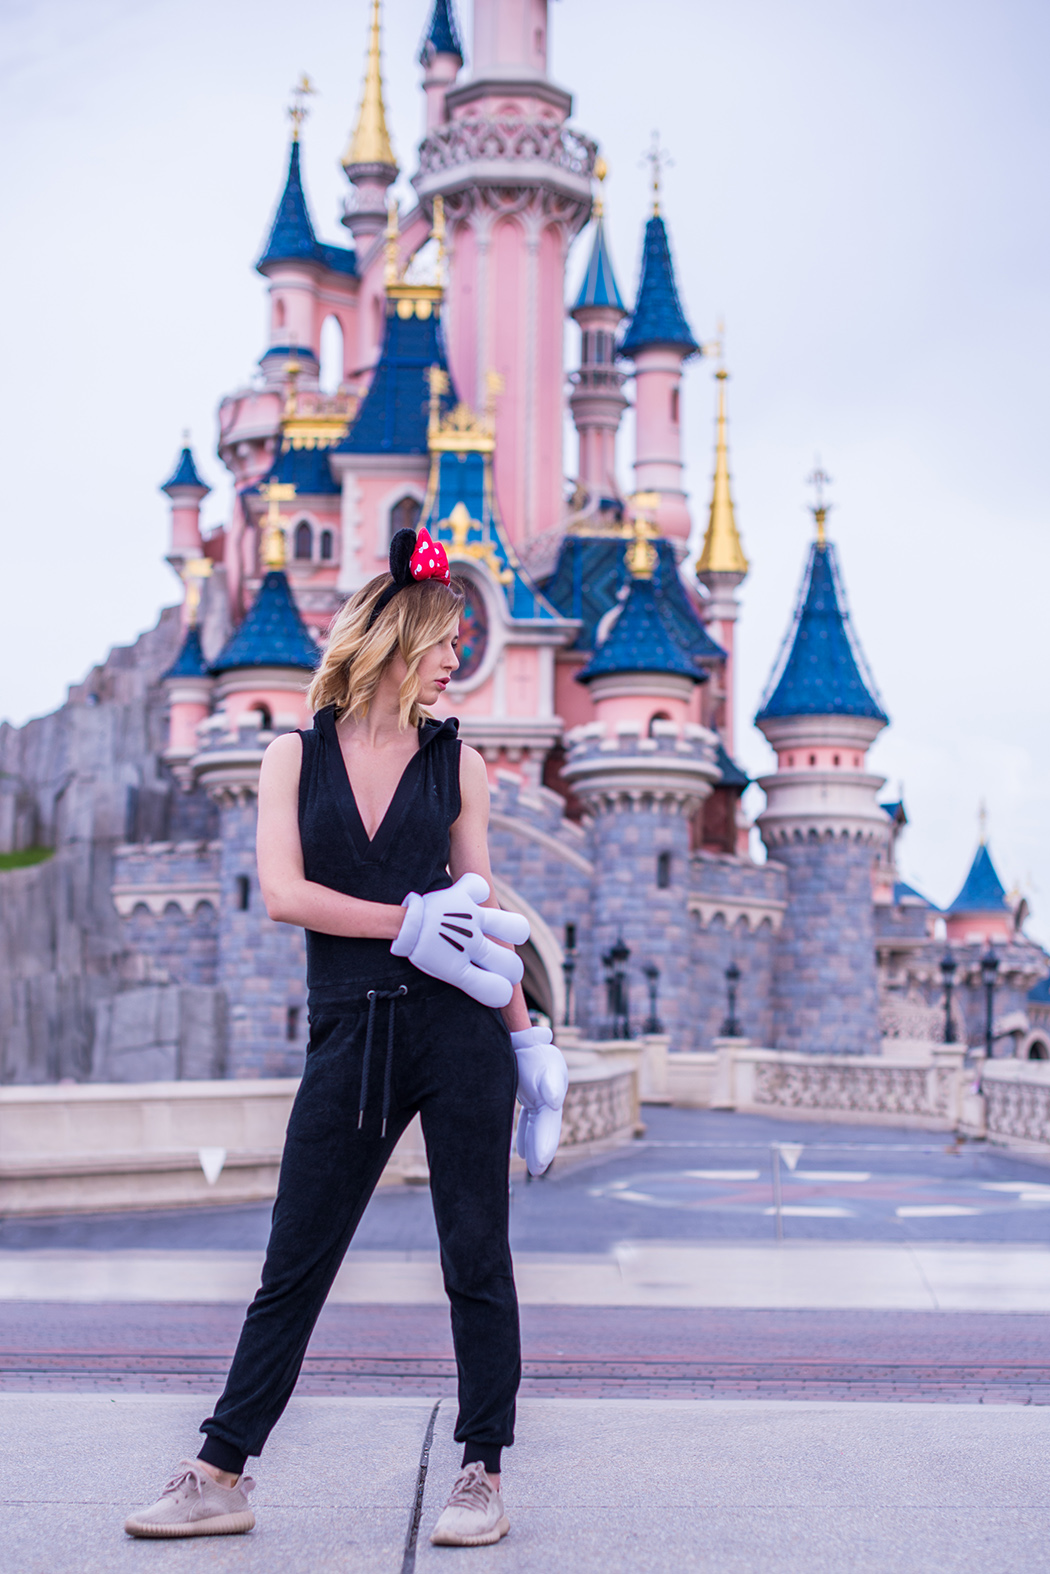 Fashionblog-Fashionblogger-Fashion-Blog-Blogger-Lindarella-One_Piece-Disneyland_Paris-1-web